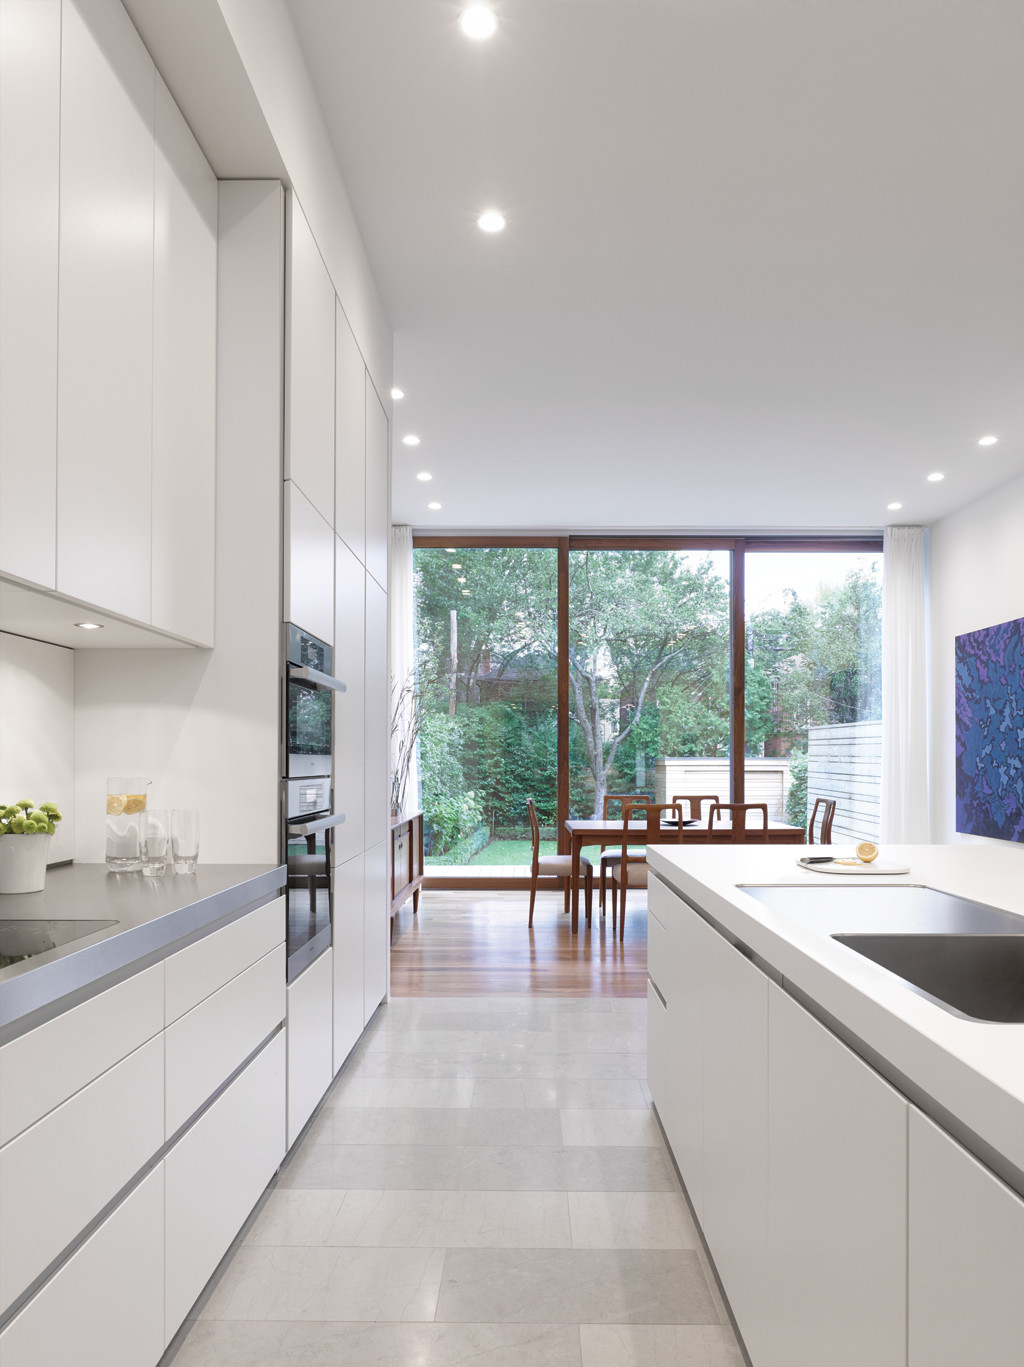 Counterpoint lofty, light-filled home by Paul Raff Studio Architects-07